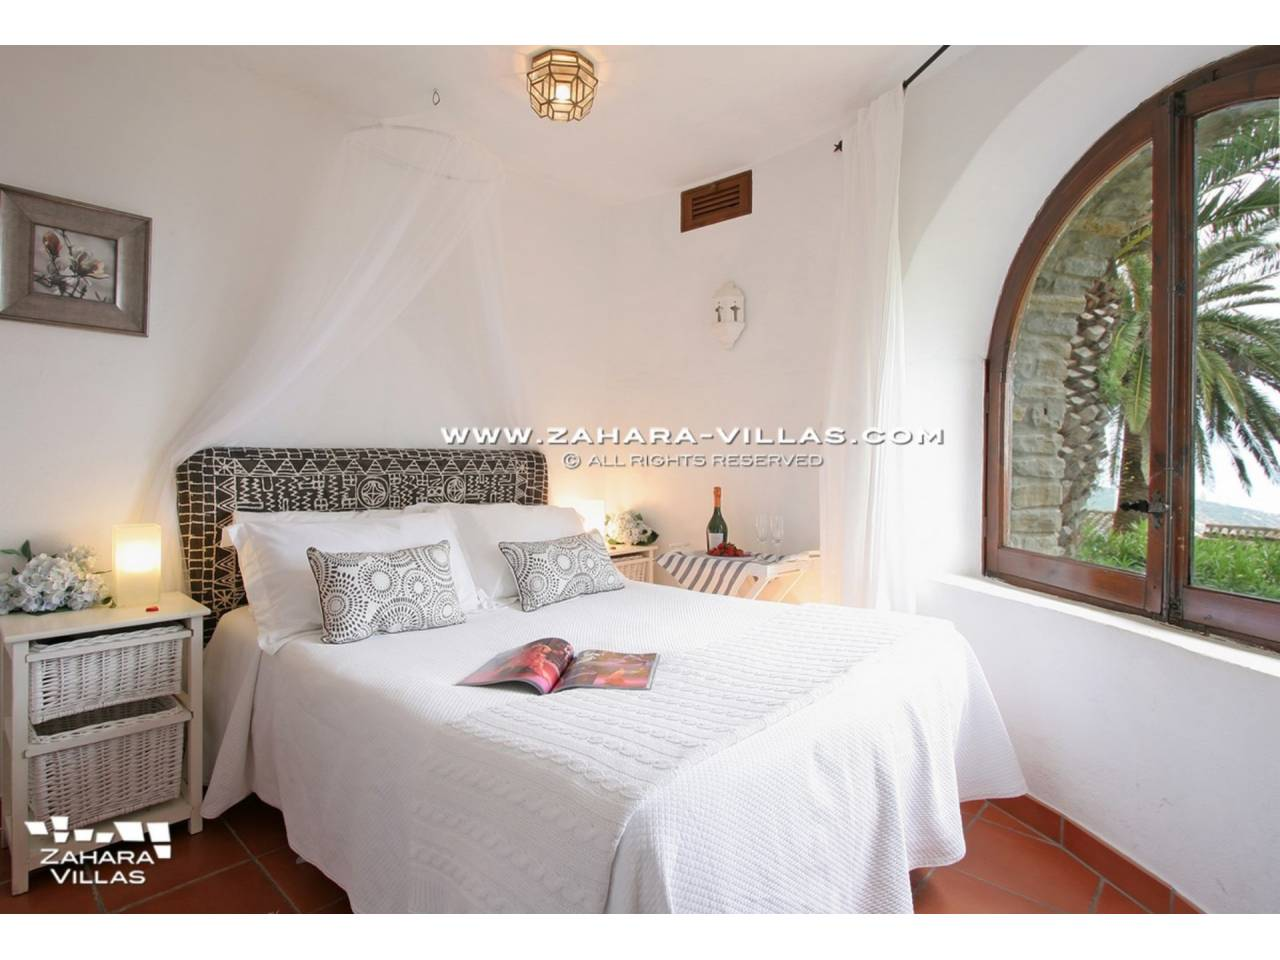 Imagen 48 de Wonderful Villa for sale in Atlanterra-Zahara de los Atunes